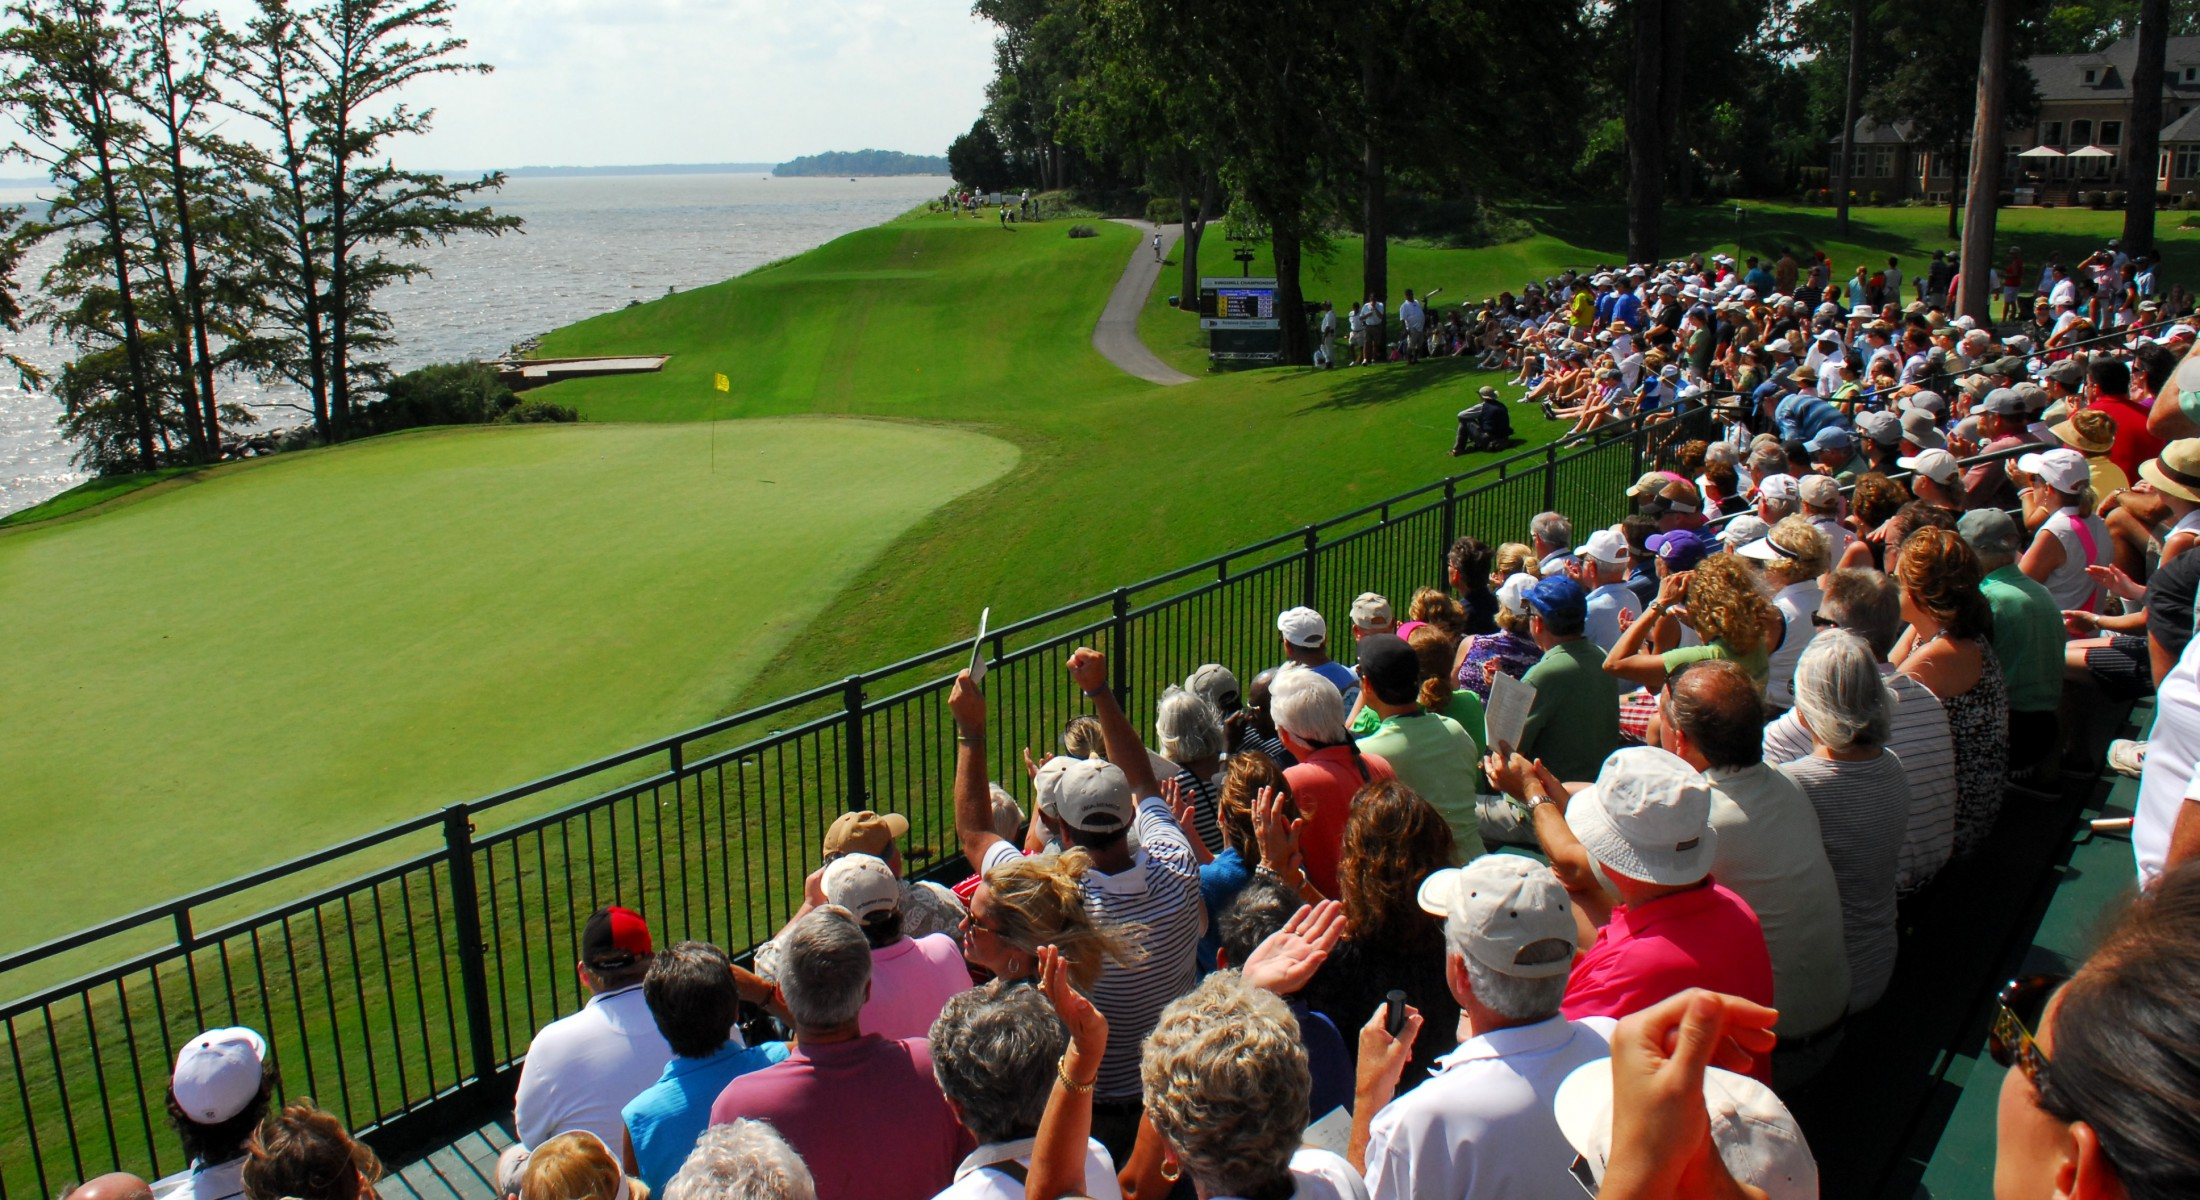 Grand Stand of People Watching Golf